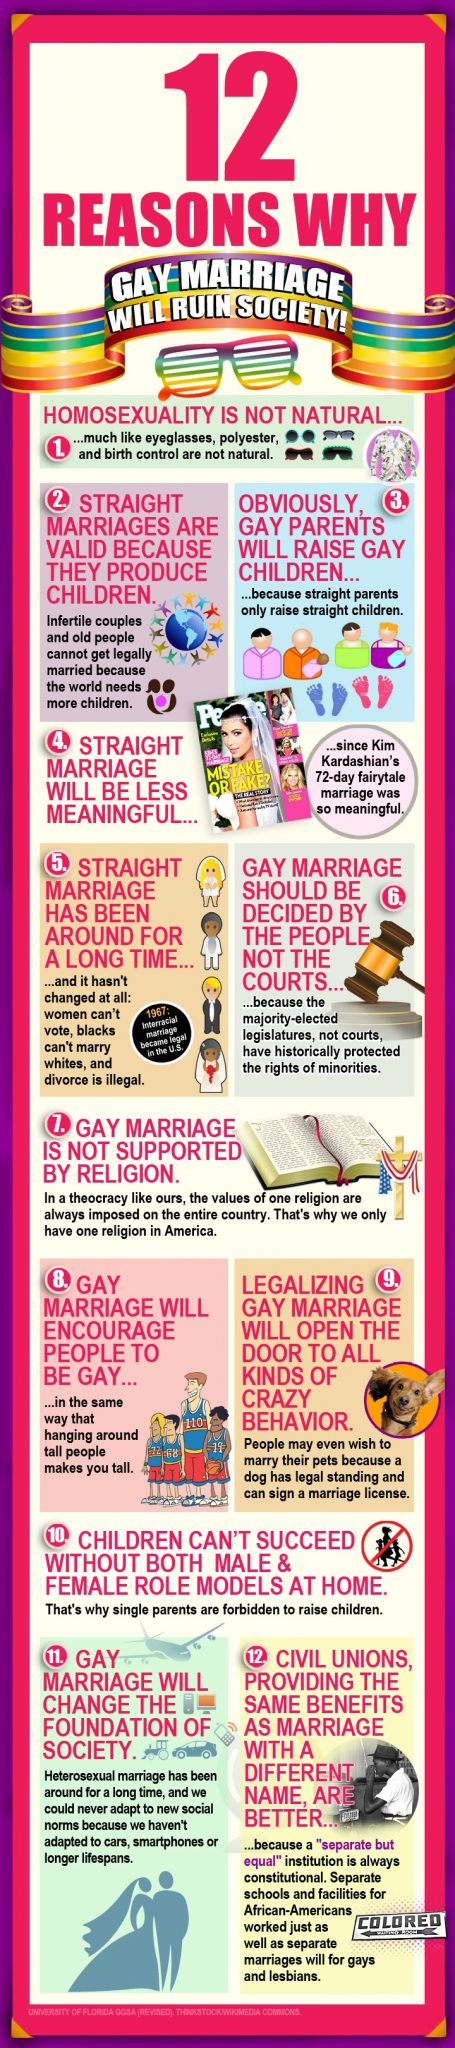 12-Reasons-Gay-Marriage-Will-Ruin-Society-Infographic